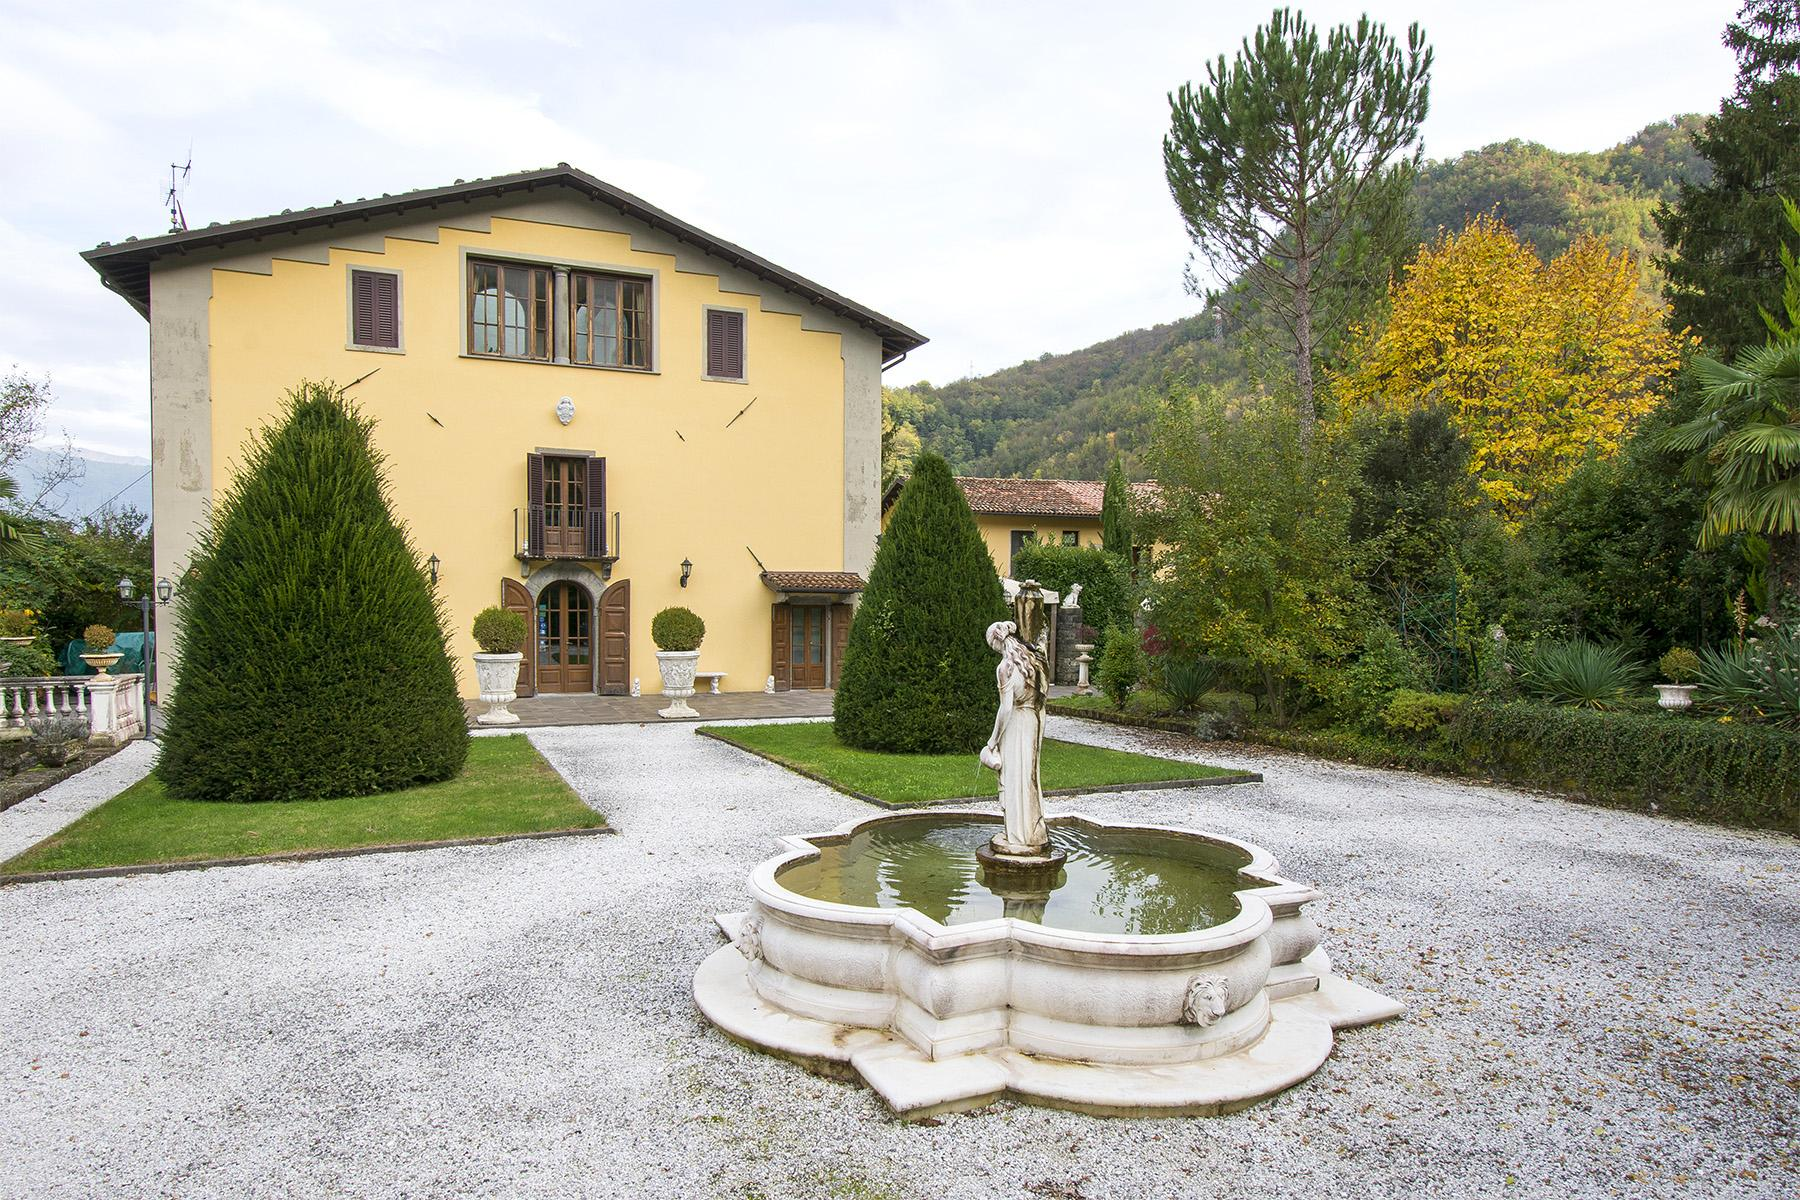 Luxury Renaissance Villa on the hills of Garfagnana Region - 31